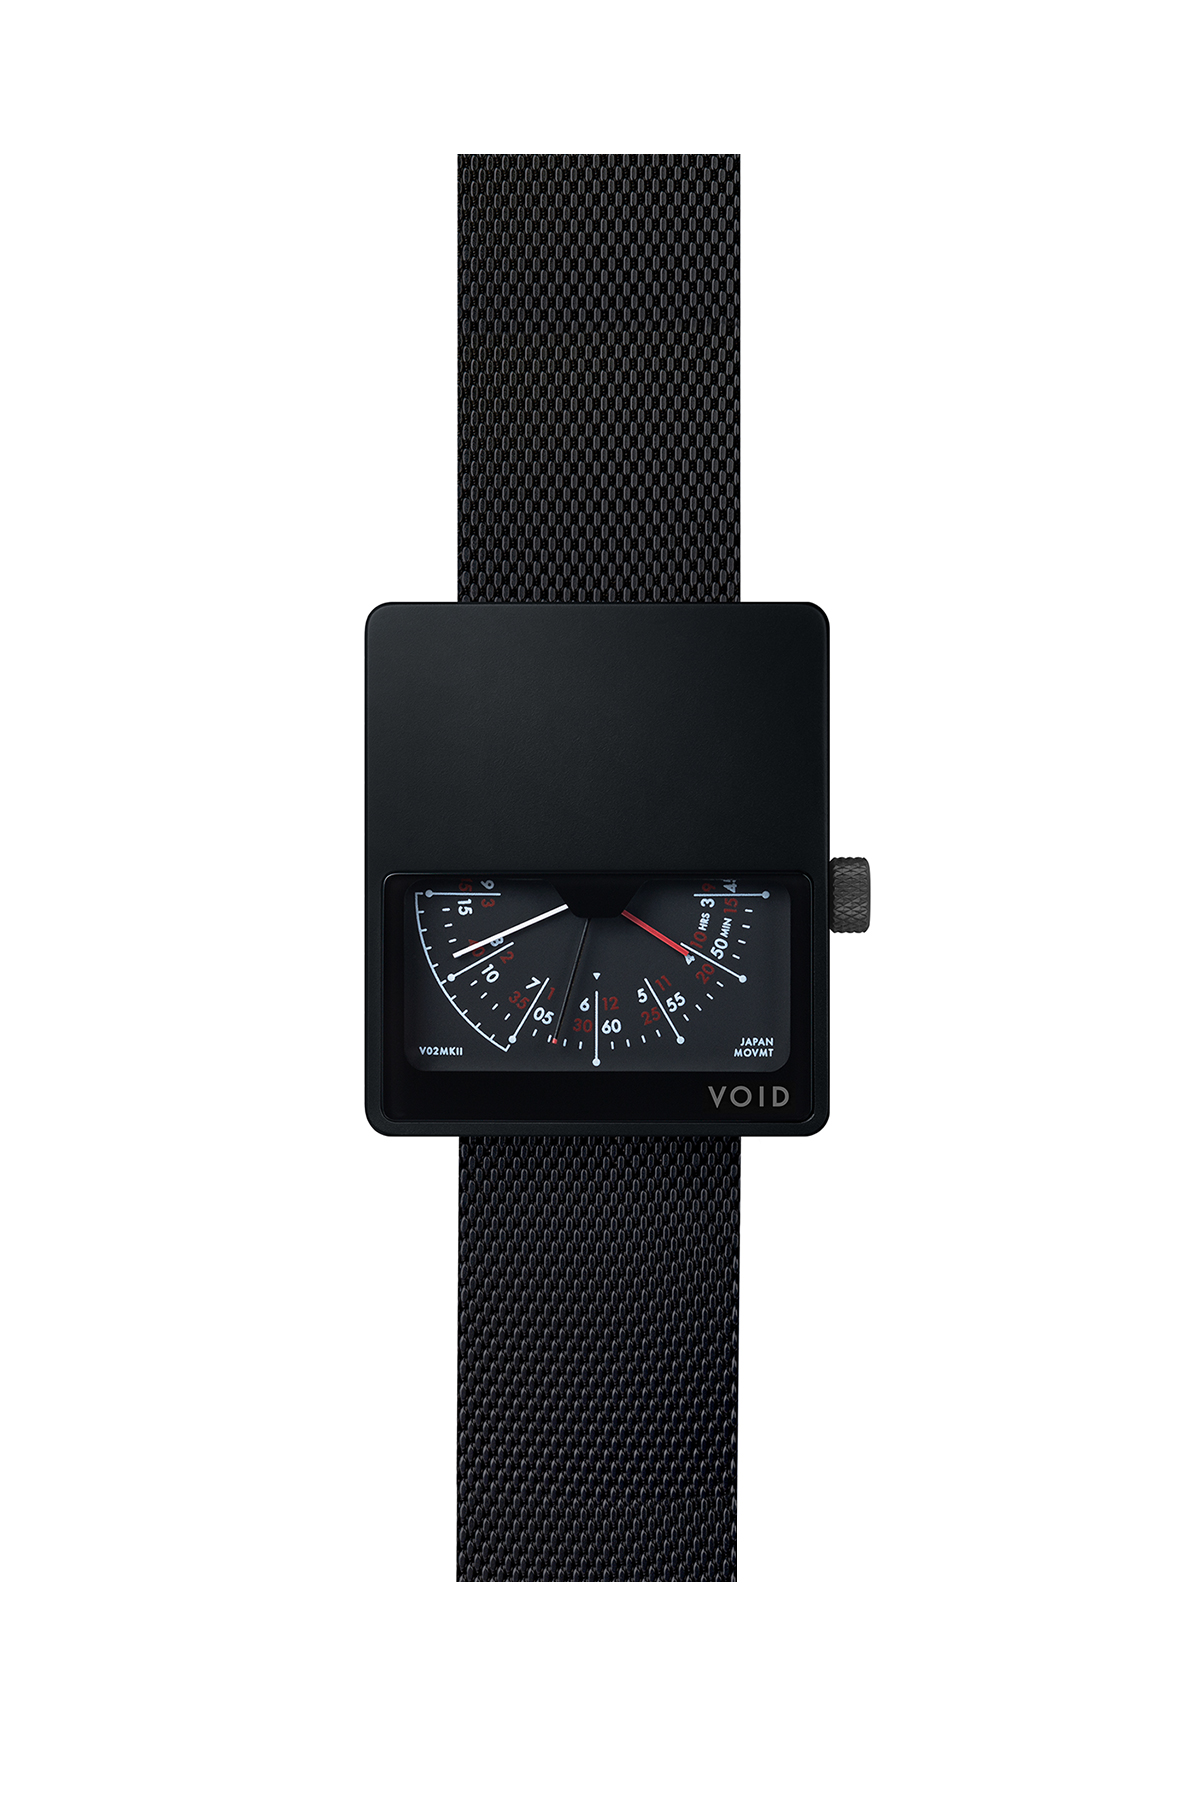 VOID WATCHES : V02 MK2 (Black / Metal Black)